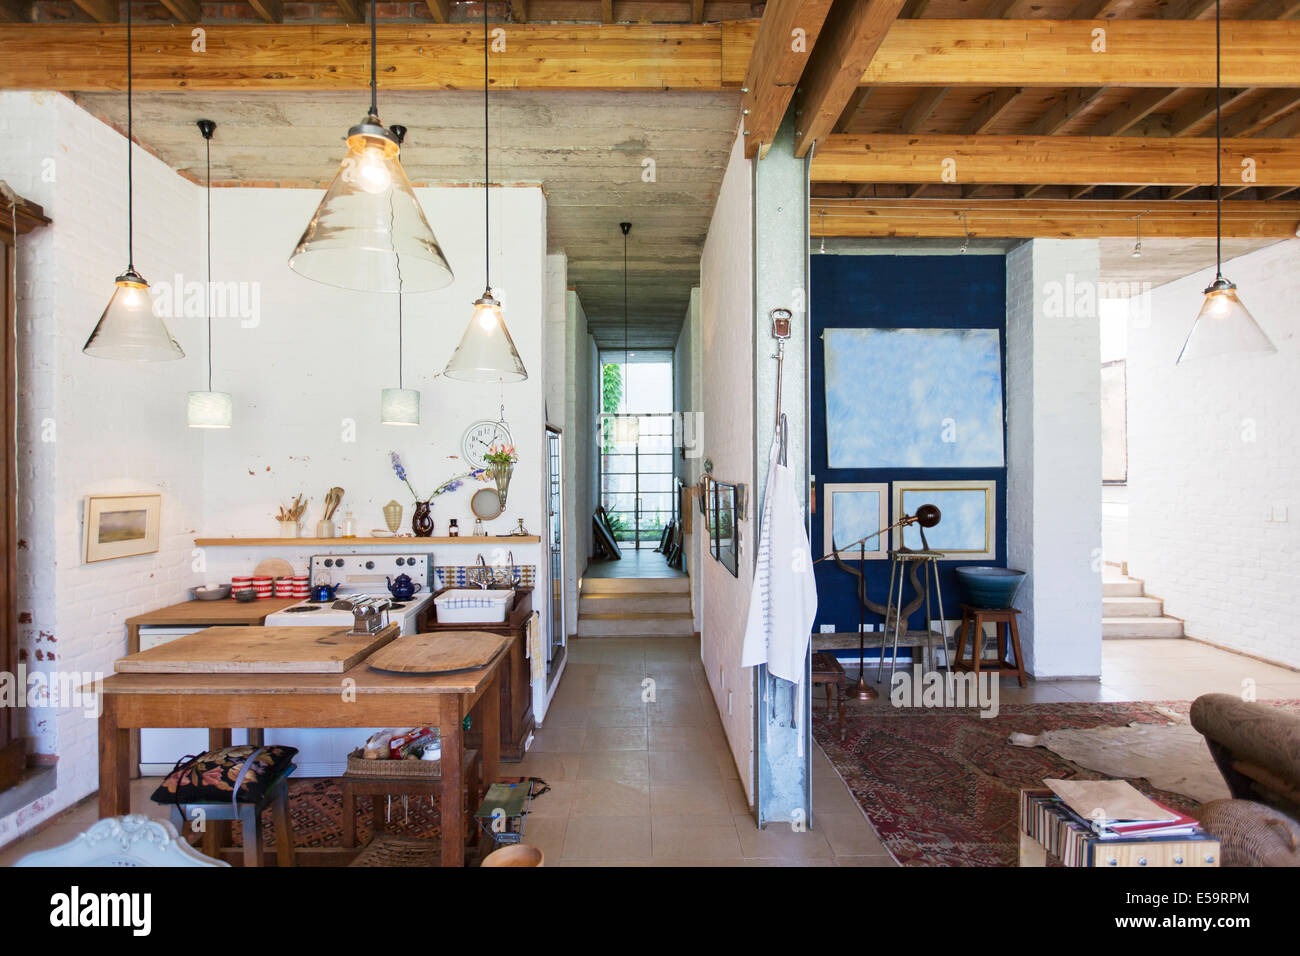 Kitchen and living area of rustic house - Stock Image